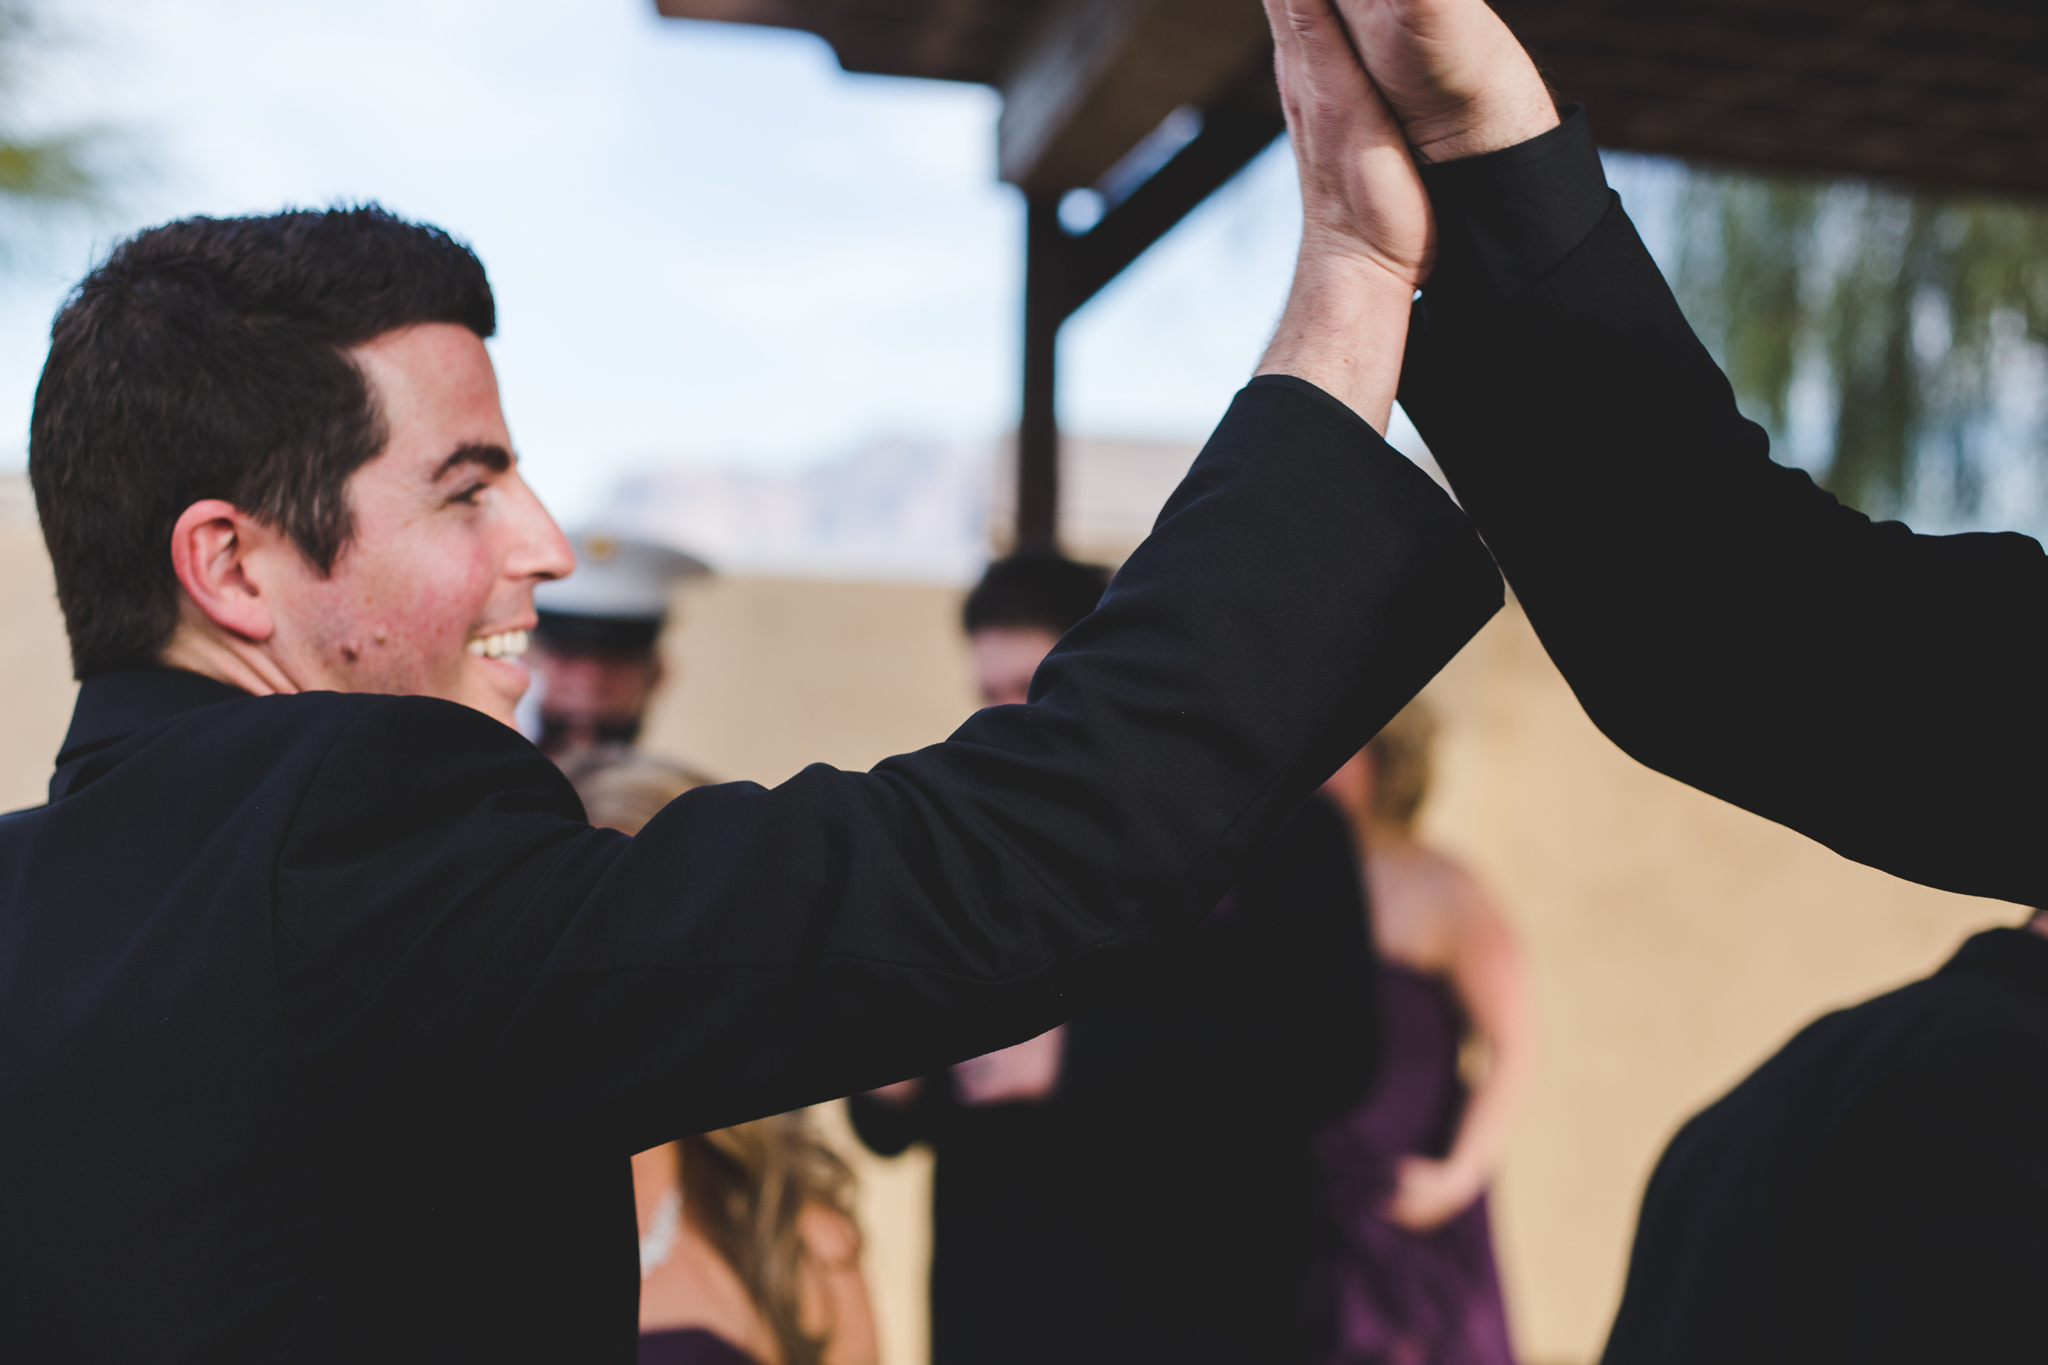 grooms gives high five after ceremony mj